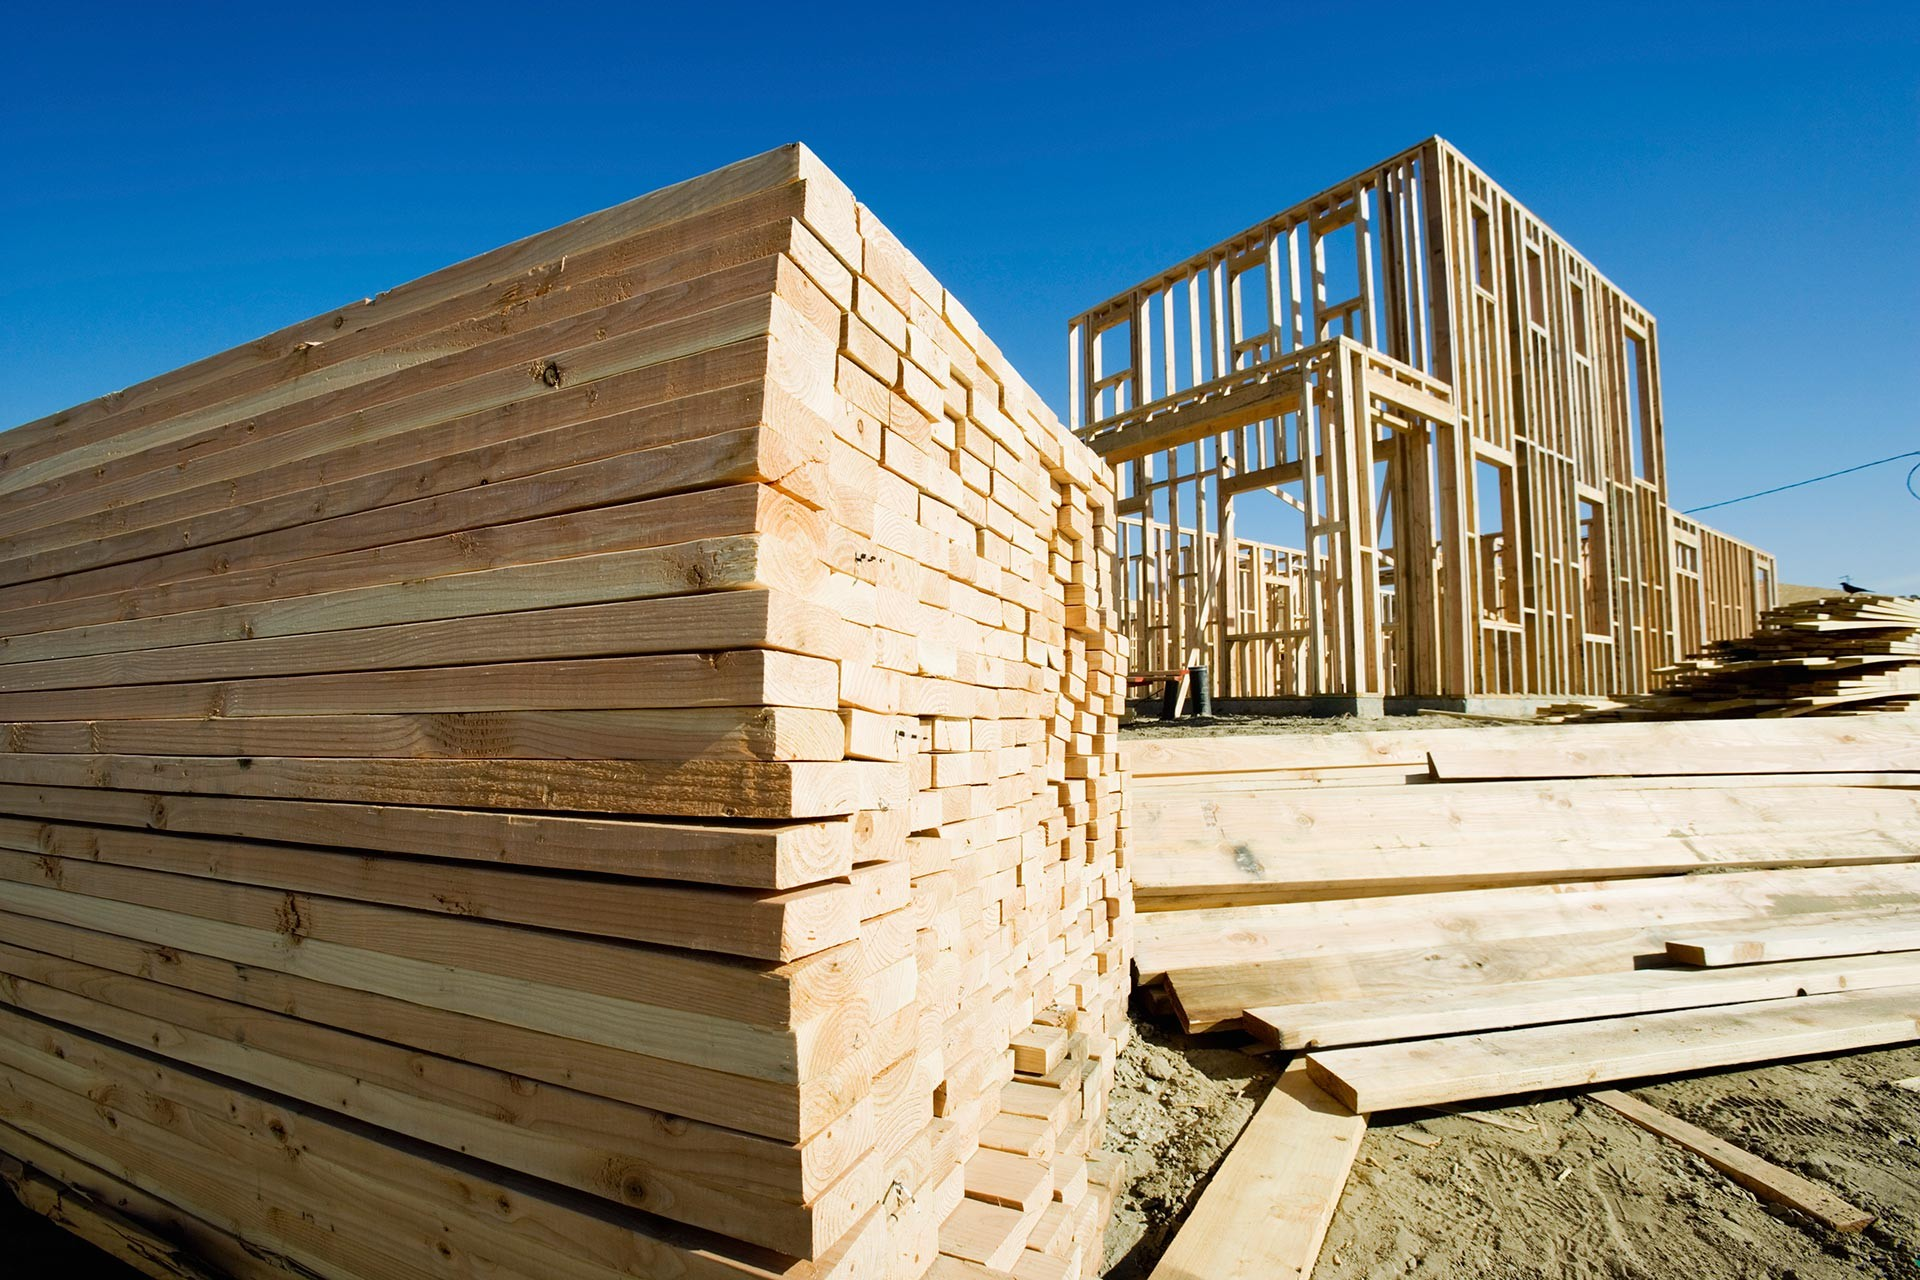 MDH Construction preparing to build a new residential home